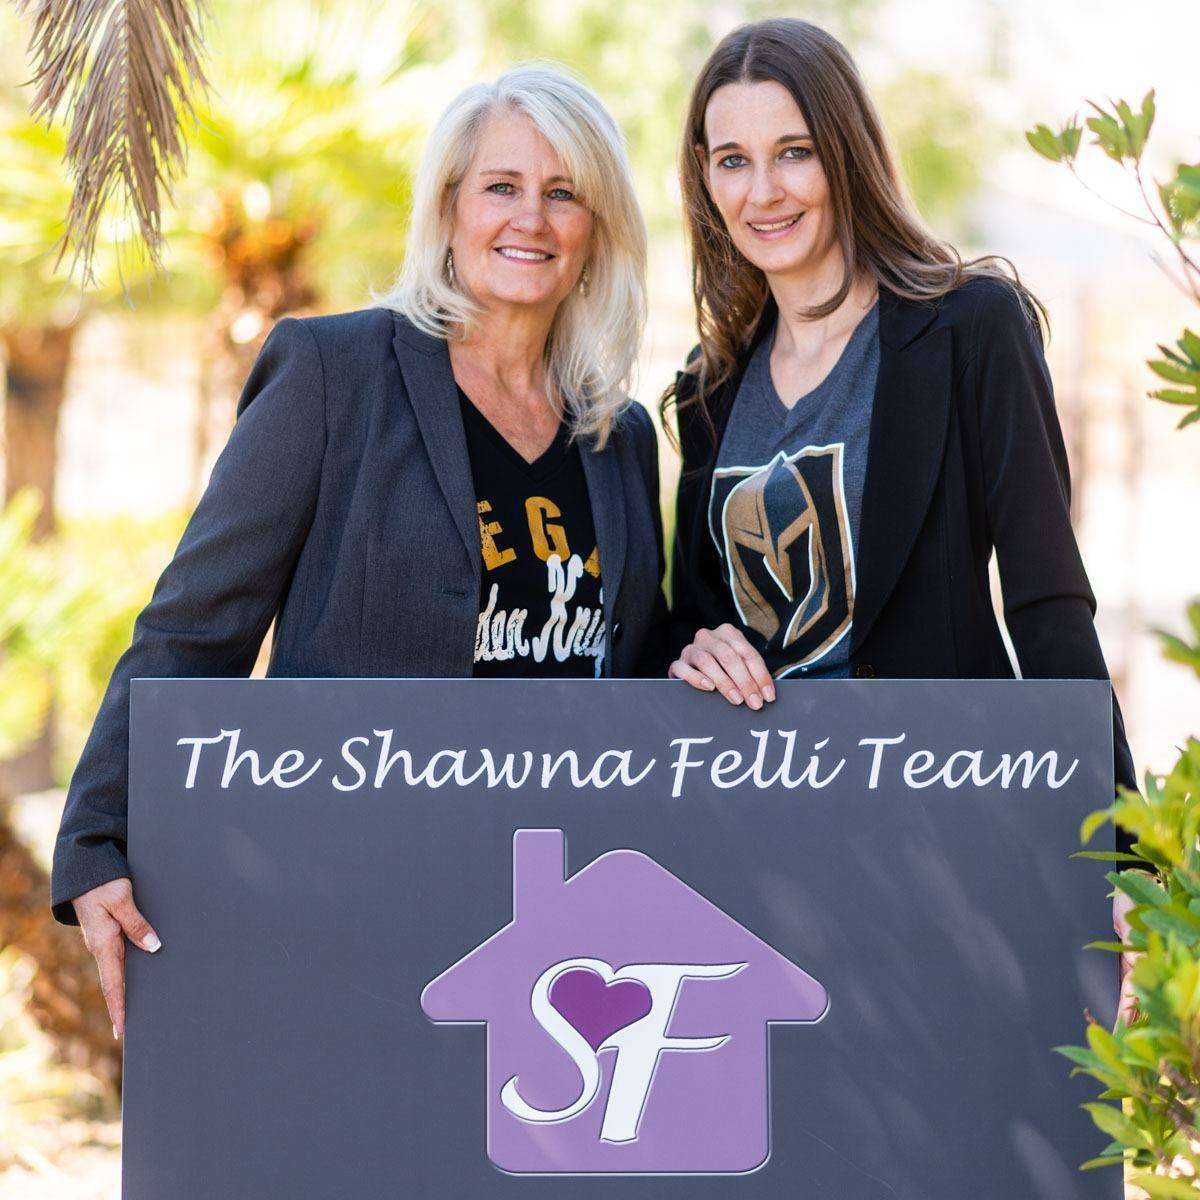 Shawna Felli Team